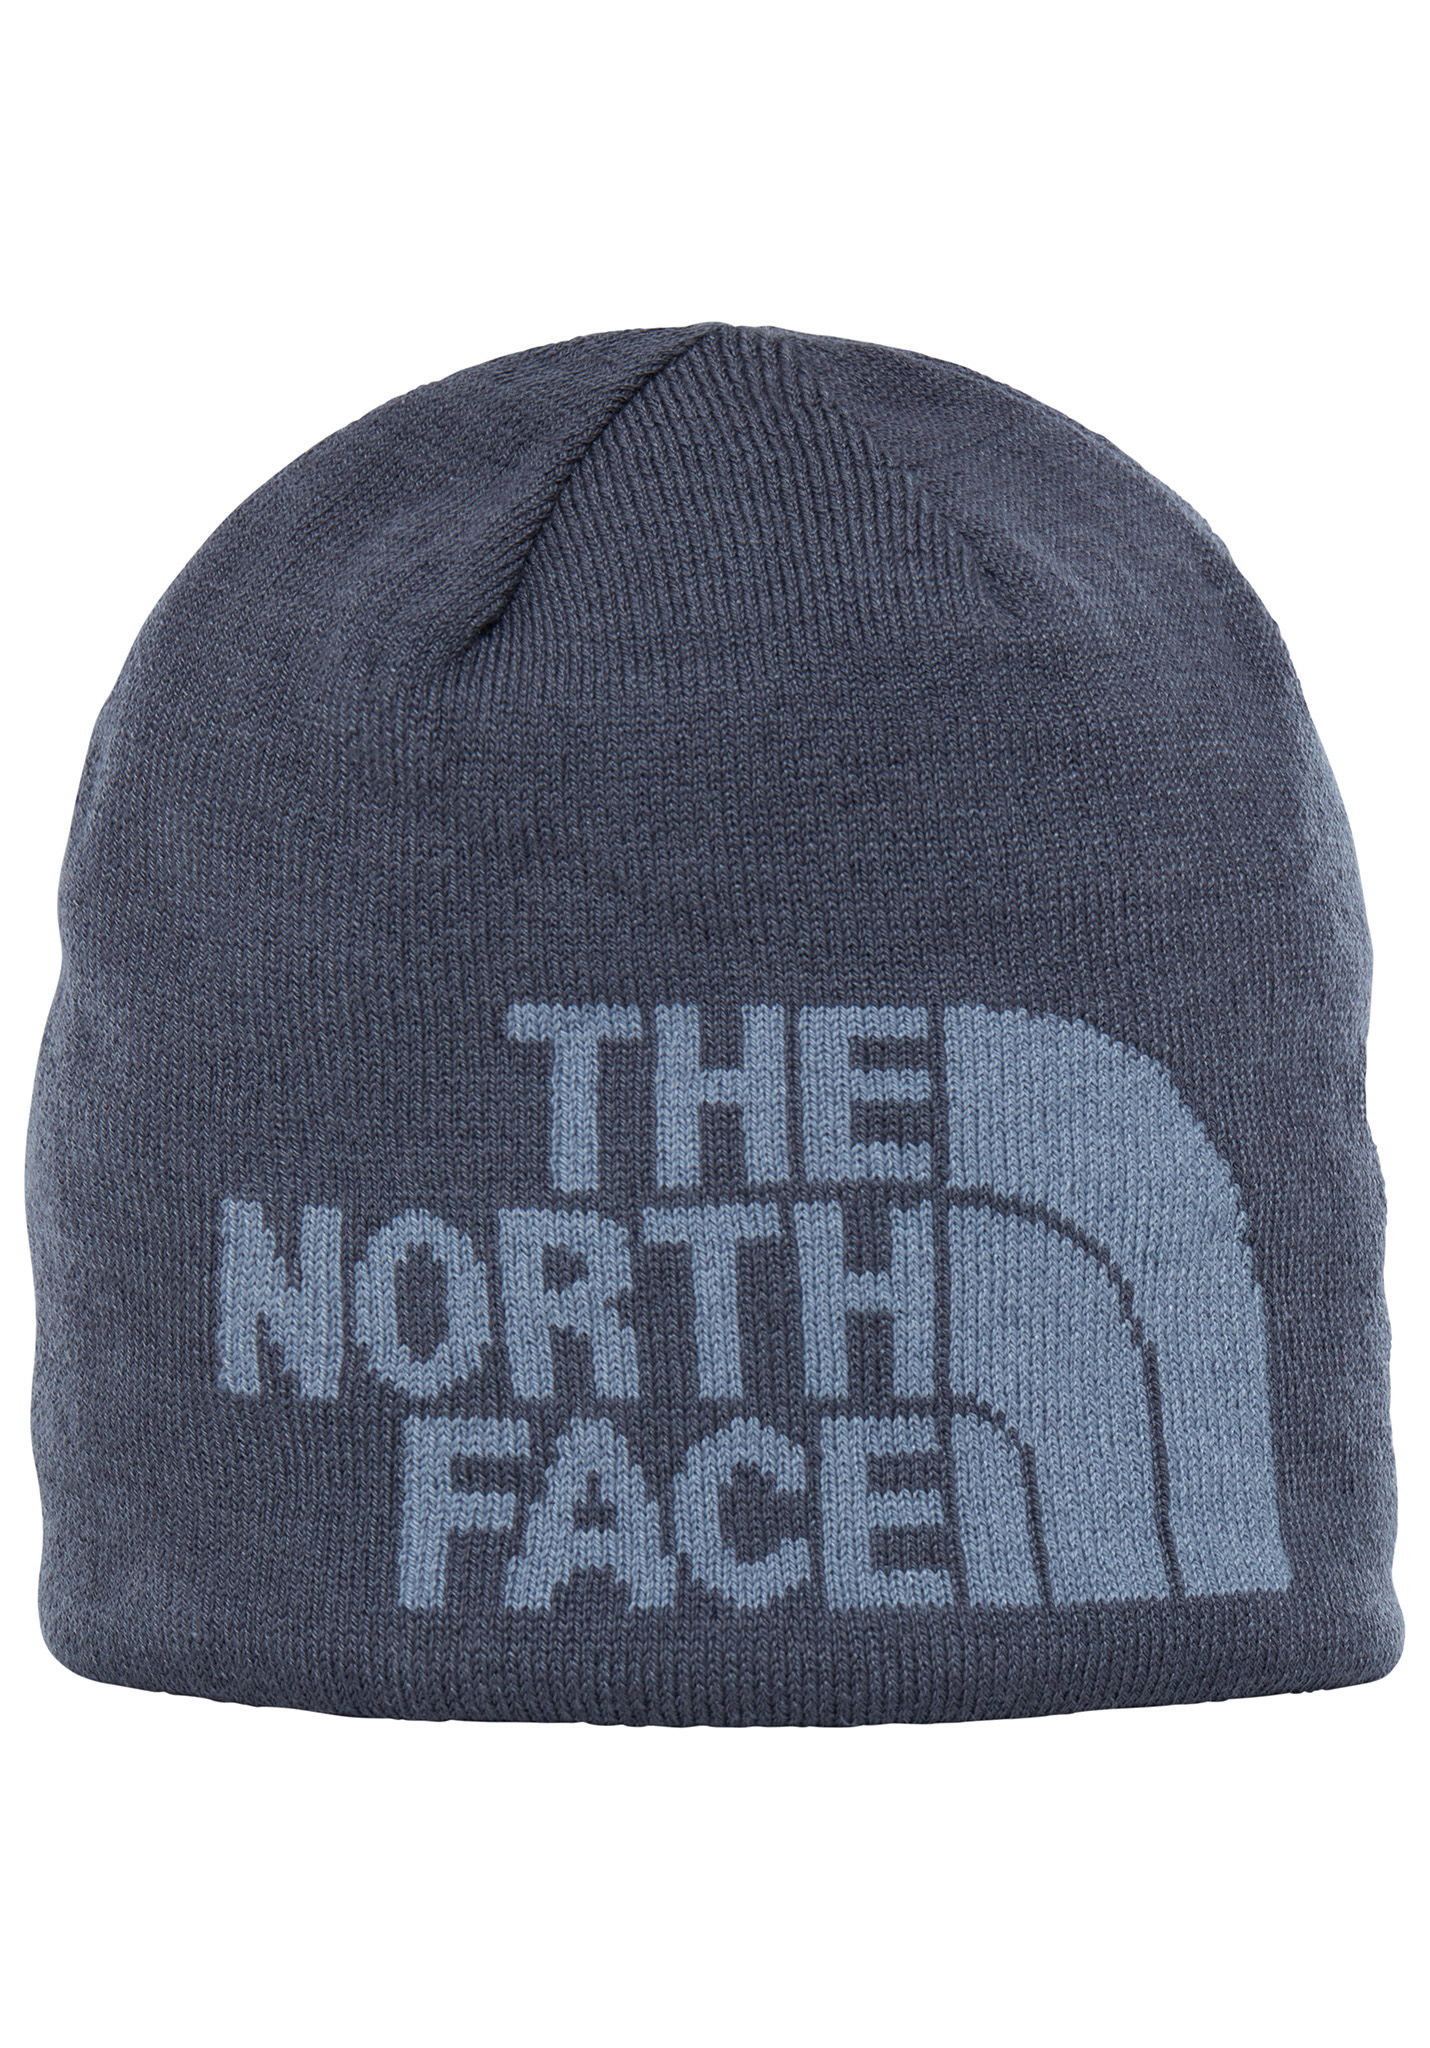 810e1539f68f5 THE NORTH FACE Highline - Beanie for Men - Grey - Planet Sports